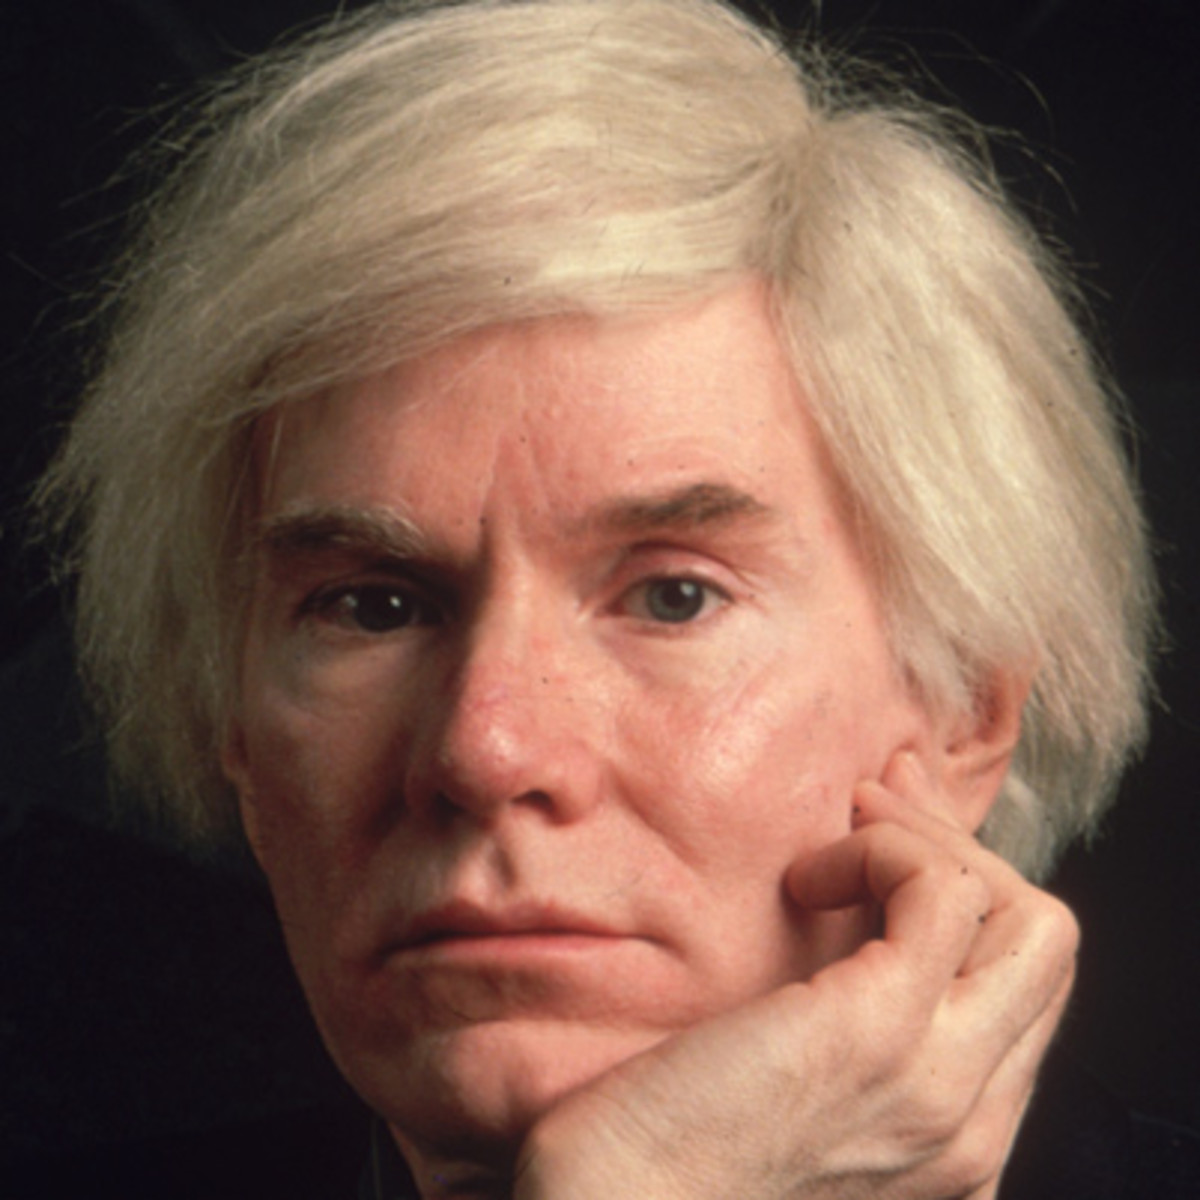 Images of Andy Warhol | 1200x1200